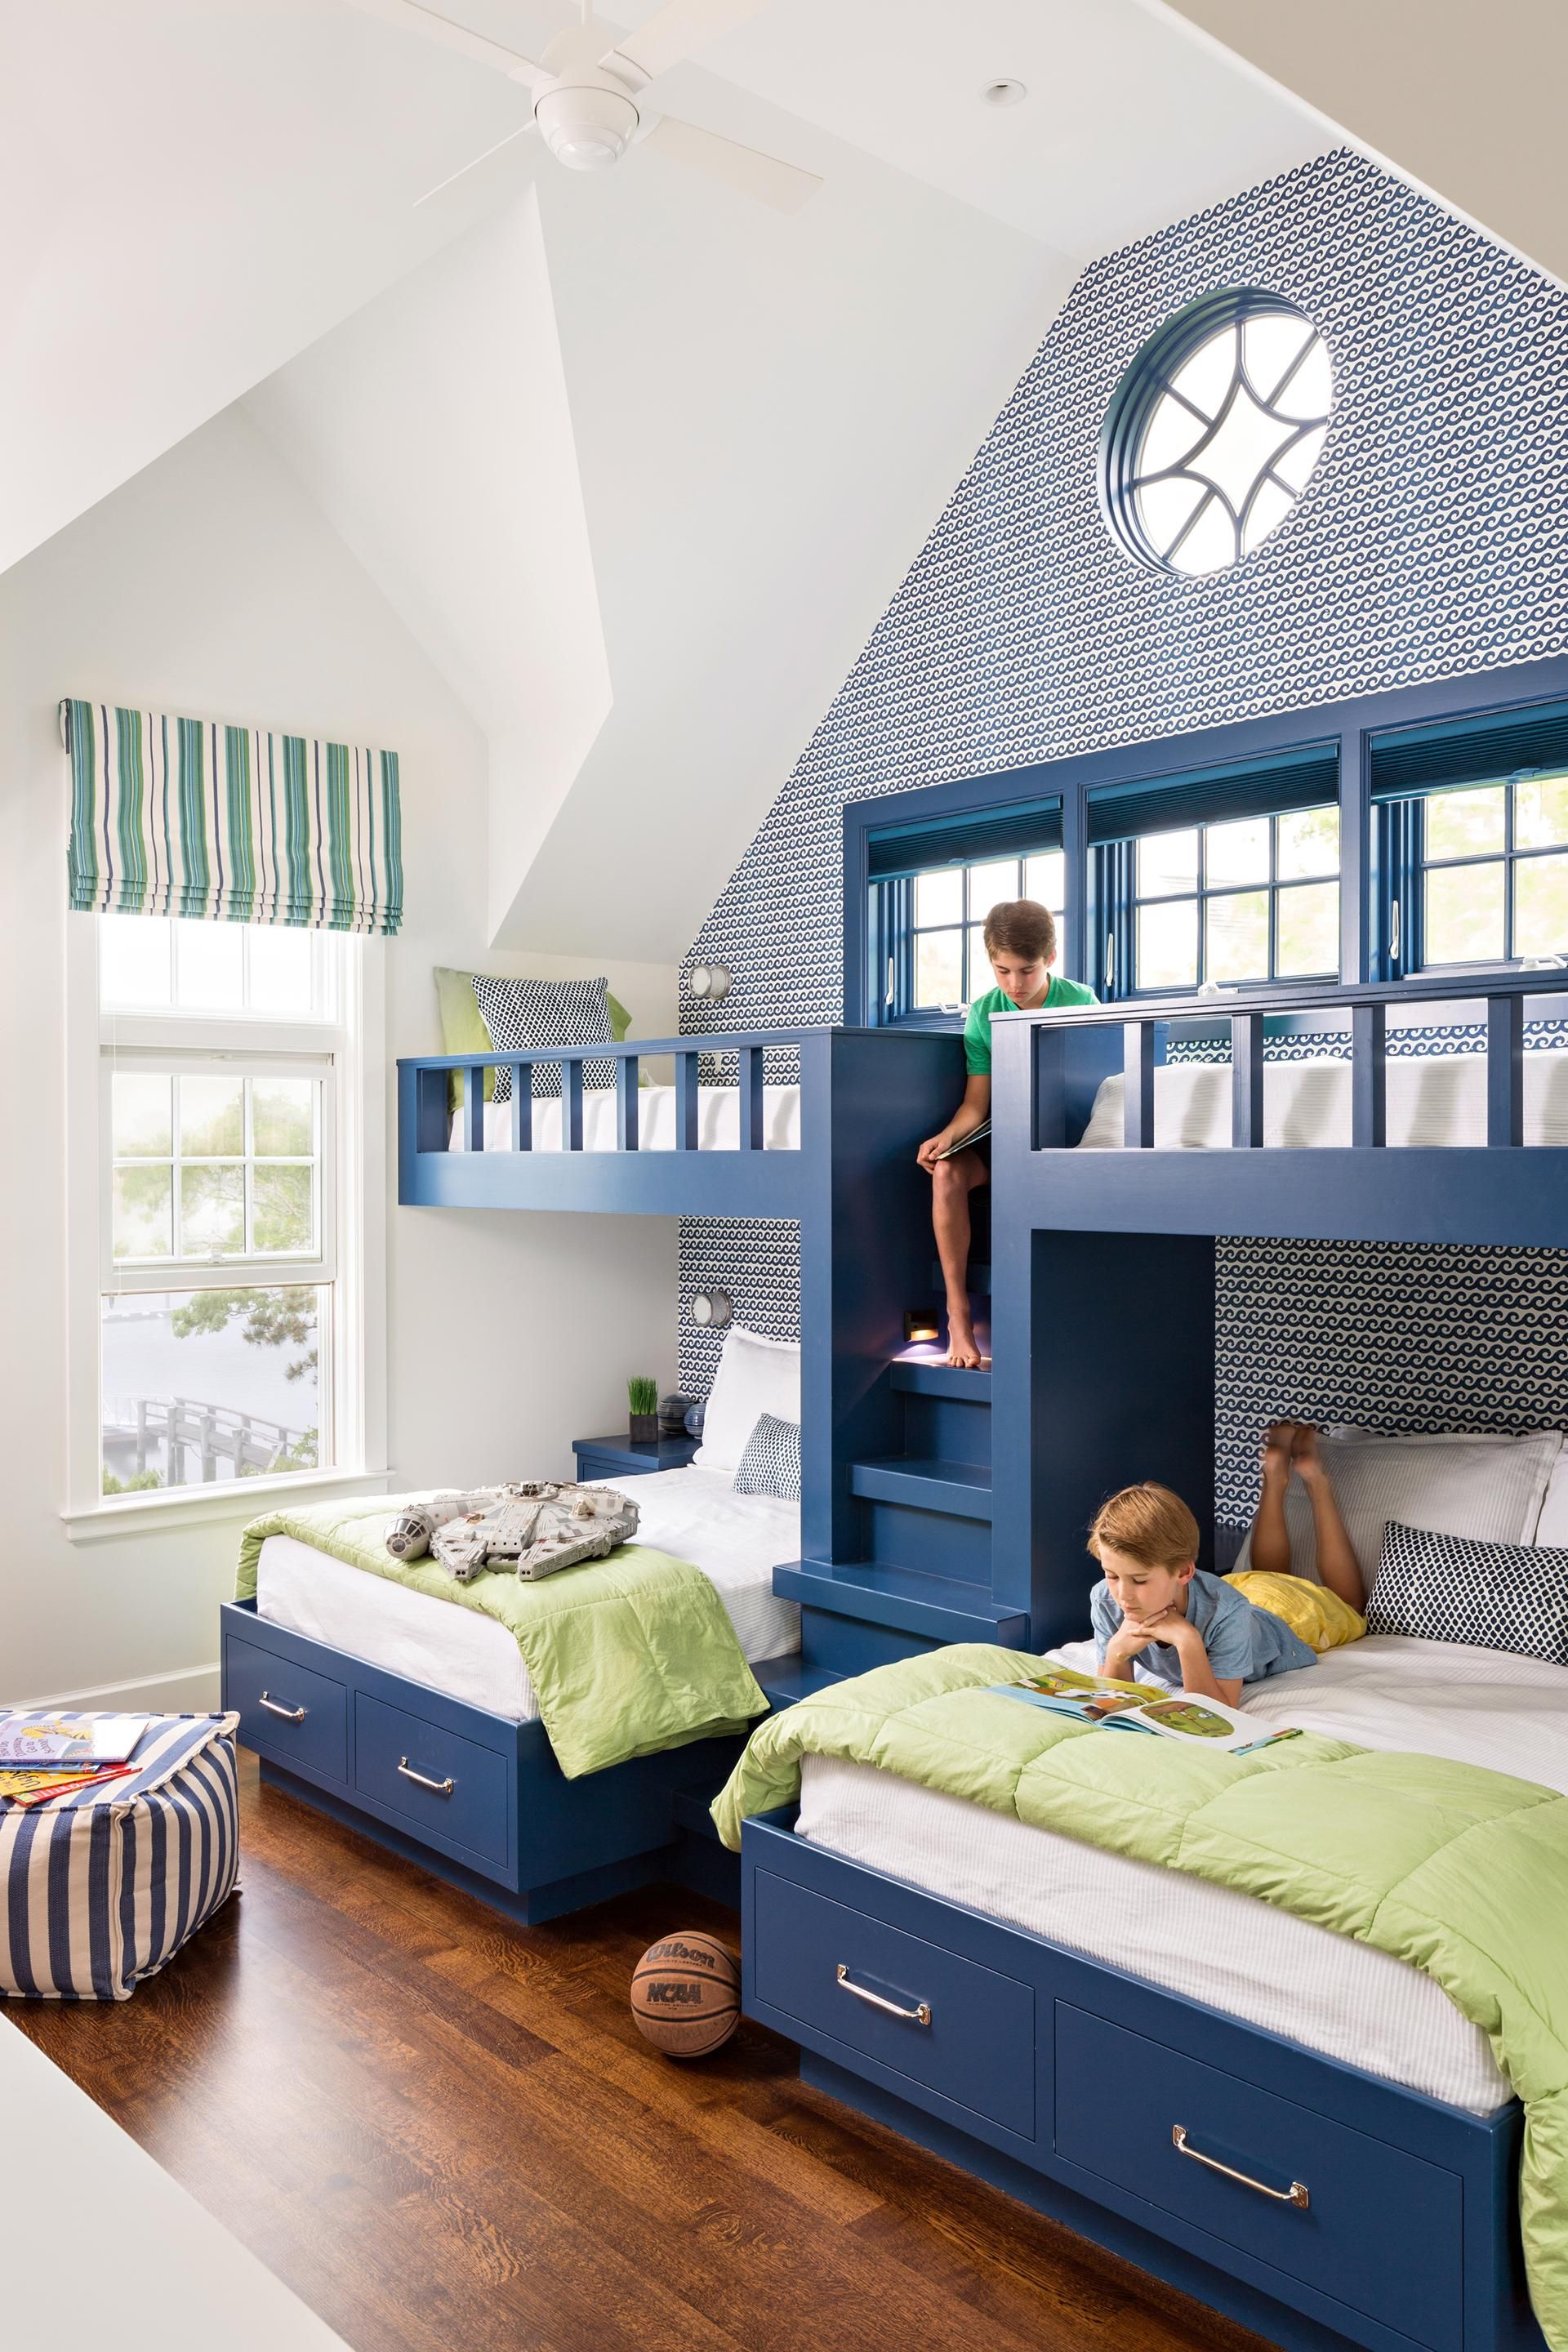 Bed with a desk wardrobe versatile children go bed under table - A Cape Cod Home Channels West Coast Style